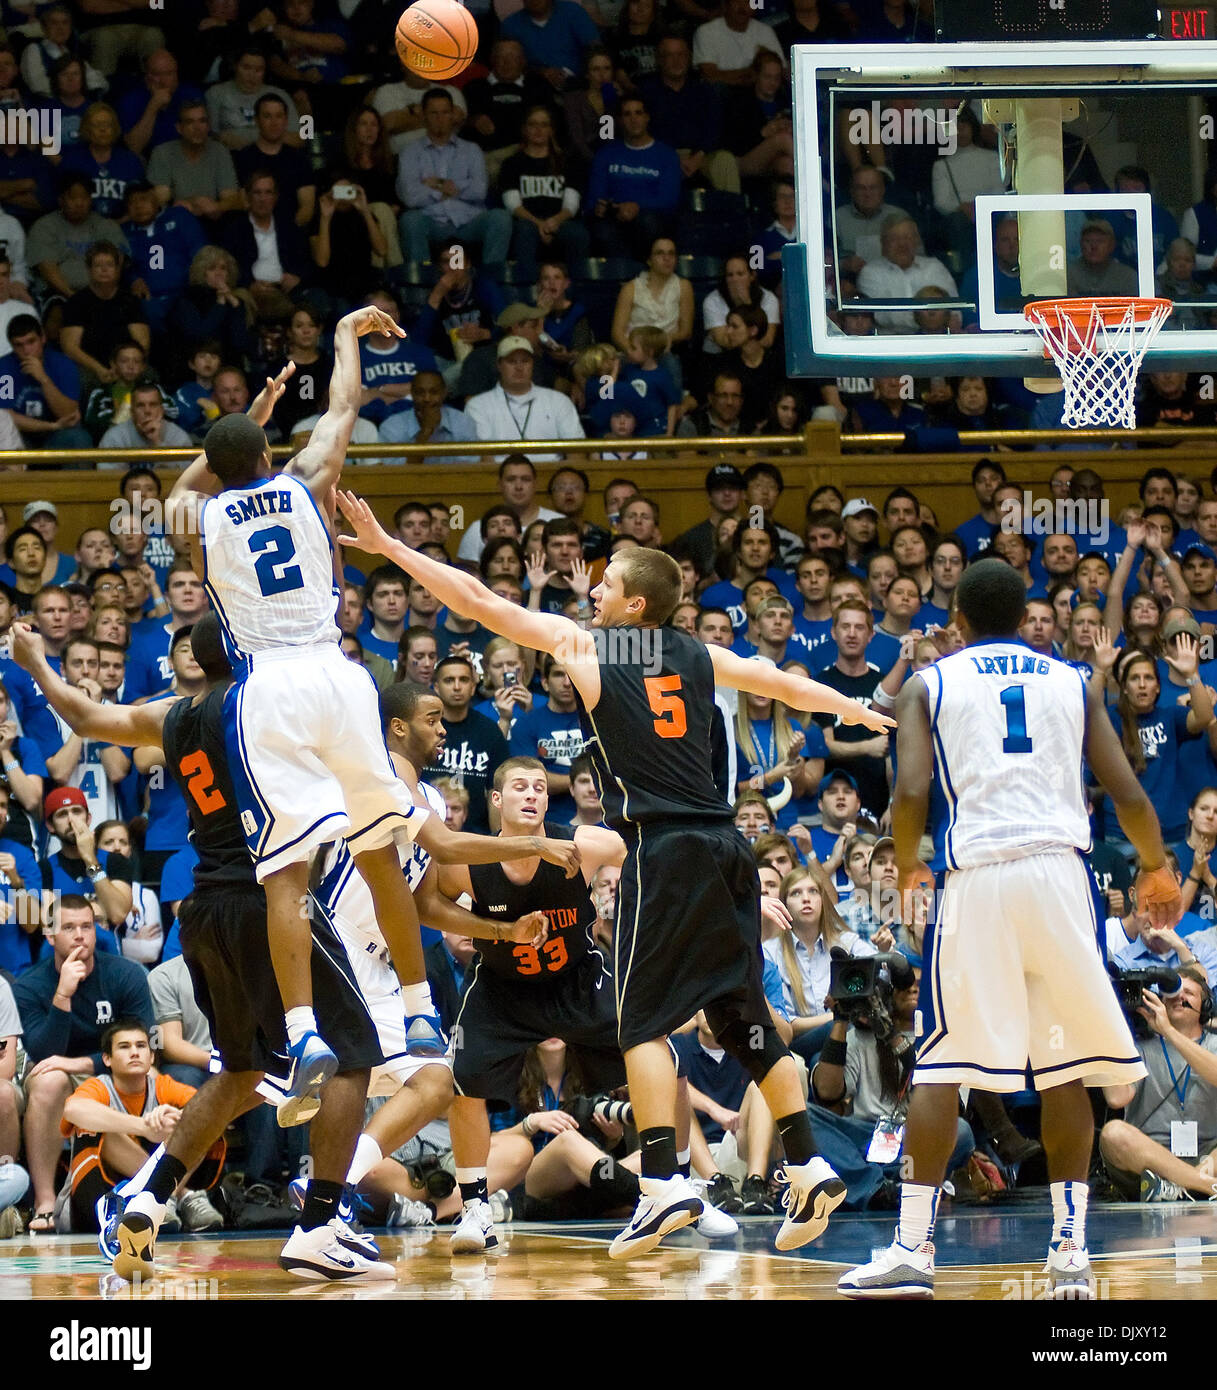 Nov. 14, 2010 - Durham, North Carolina, United States of America - Duke Blue Devils guard Nolan Smith (2) shoots a 3pointer over Princeton Tigers guard T.J. Bray (5).Duke beats Princeton 97-60 at Cameron Indoor Stadium Durham NC (Credit Image: © Mark Abbott/Southcreek Global/ZUMApress.com) - Stock Image